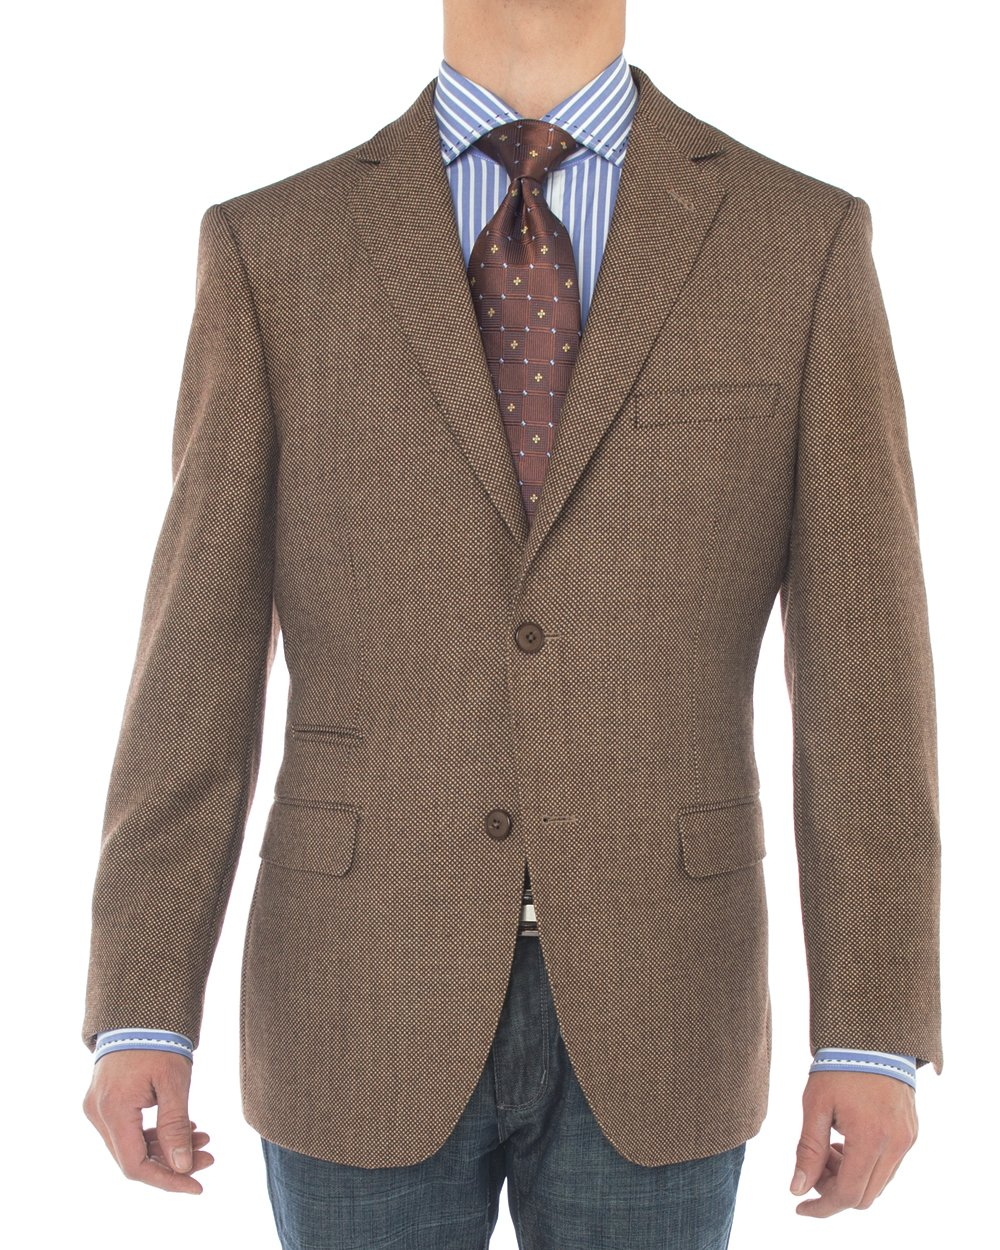 Luciano Natazzi Mens 2 Button 160'S Wool Blazer Working Button Holes Suit Jacket (44 Long US / 54 Long EU, Brown) by Luciano Natazzi